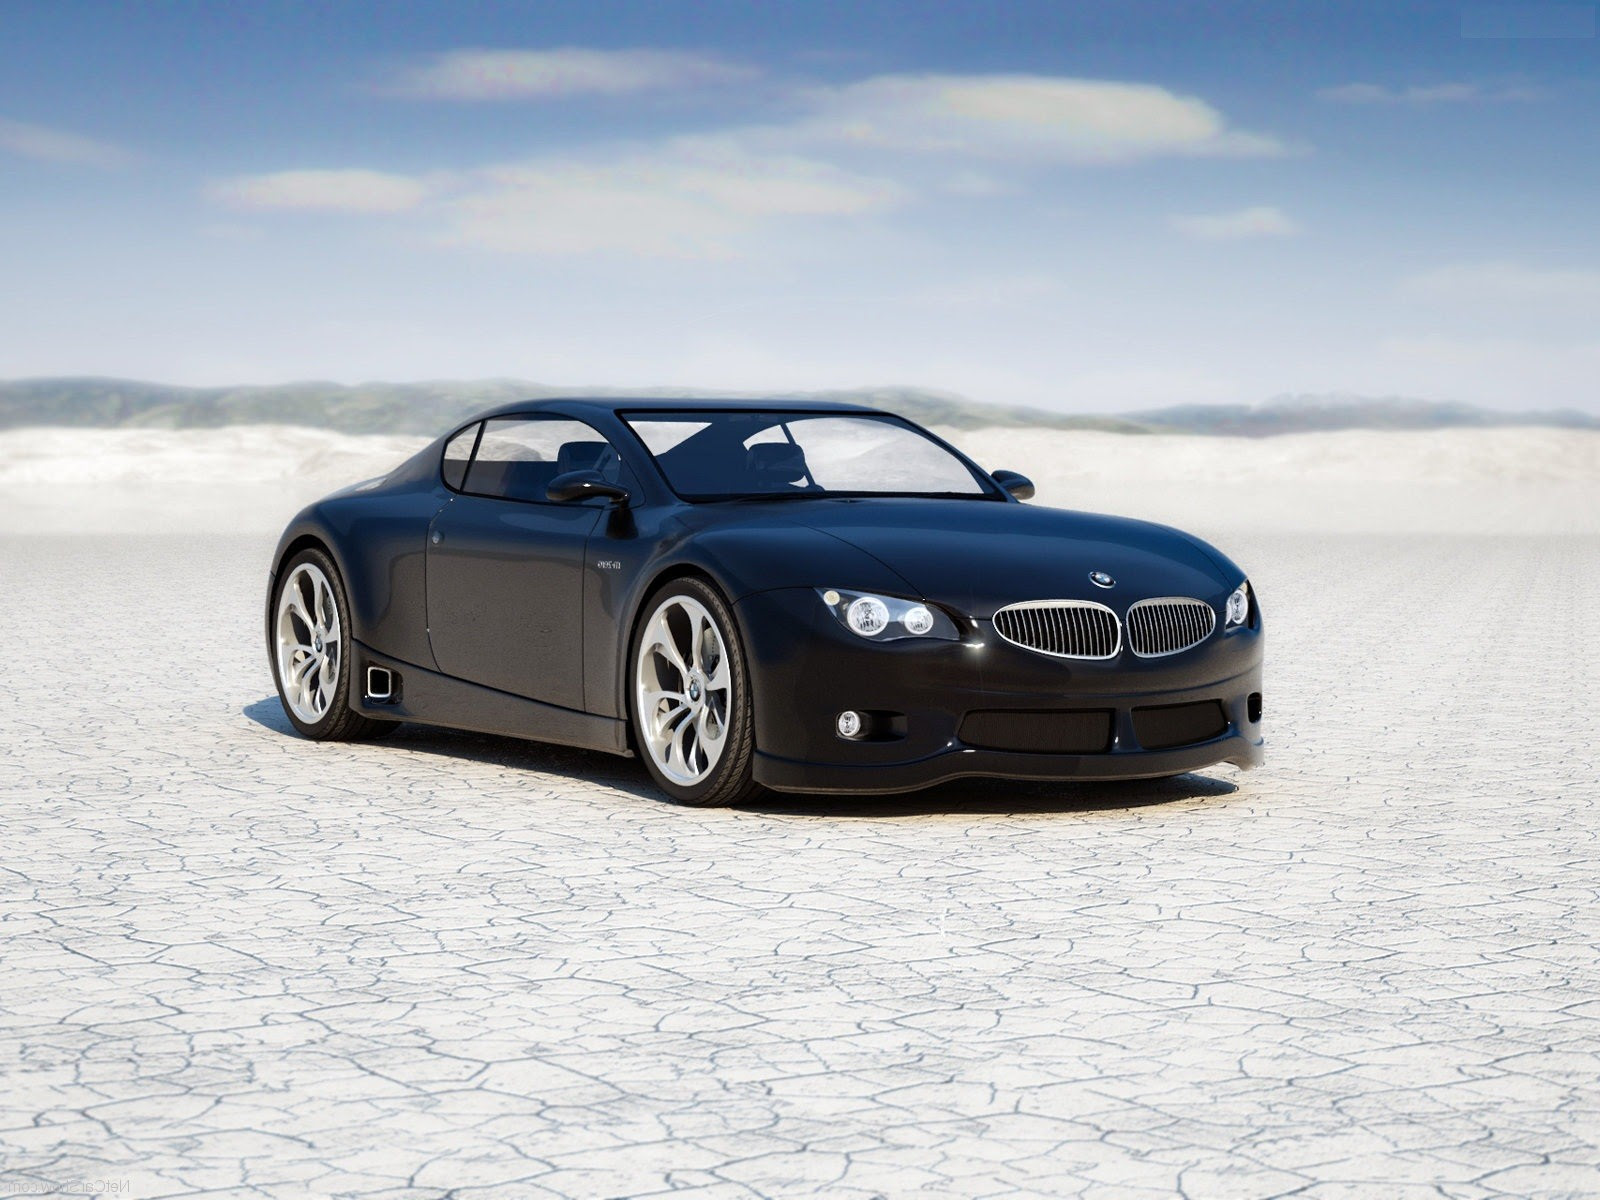 Download Bmw Car HD Wallpaper Free Download Gallery